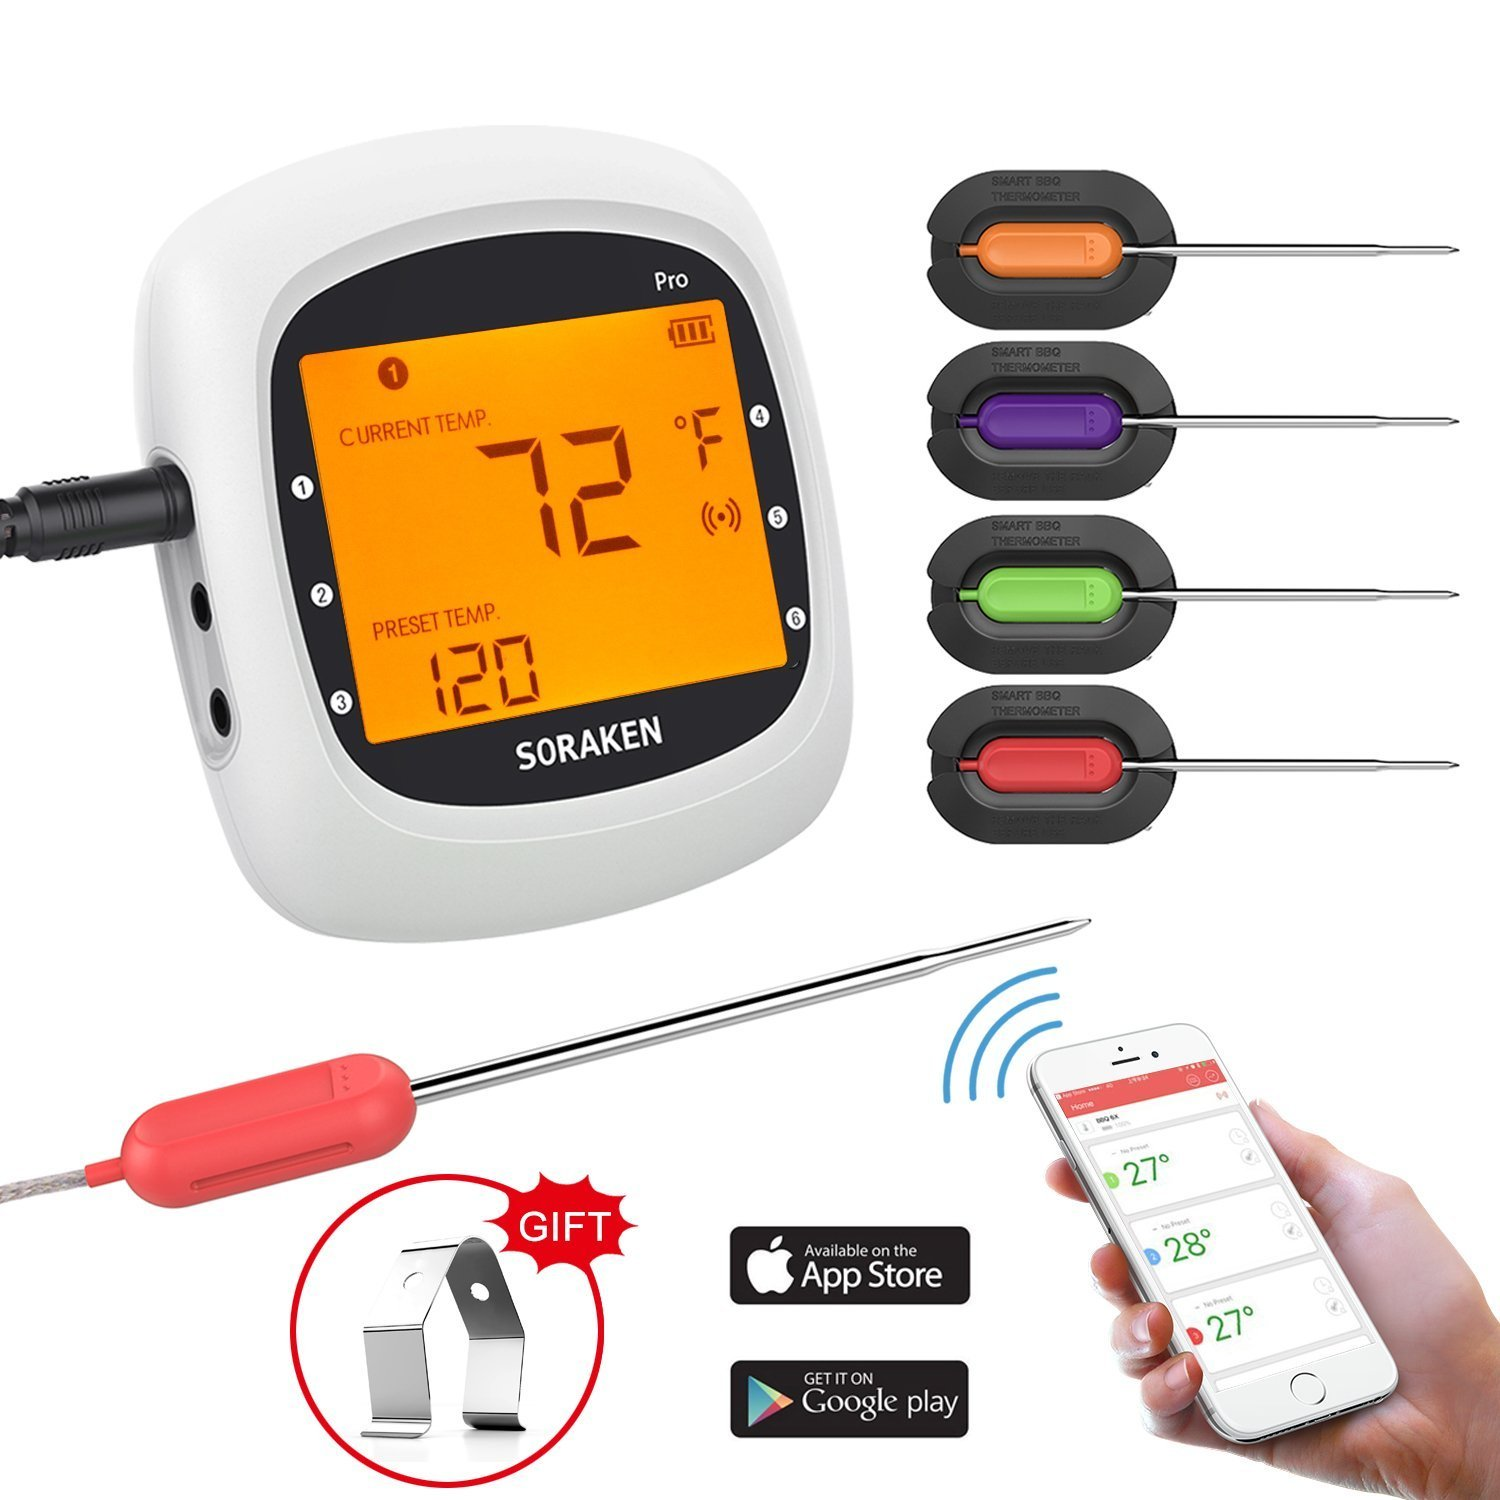 Wireless Meat Thermometer for Grilling, Bluetooth Meat Thermometer Digital BBQ Cooking Thermometer with 4 Probes, Alarm Monitor Cooking Thermometer for Barbecue Oven Kitchen, Support IOS & Android by Soraken